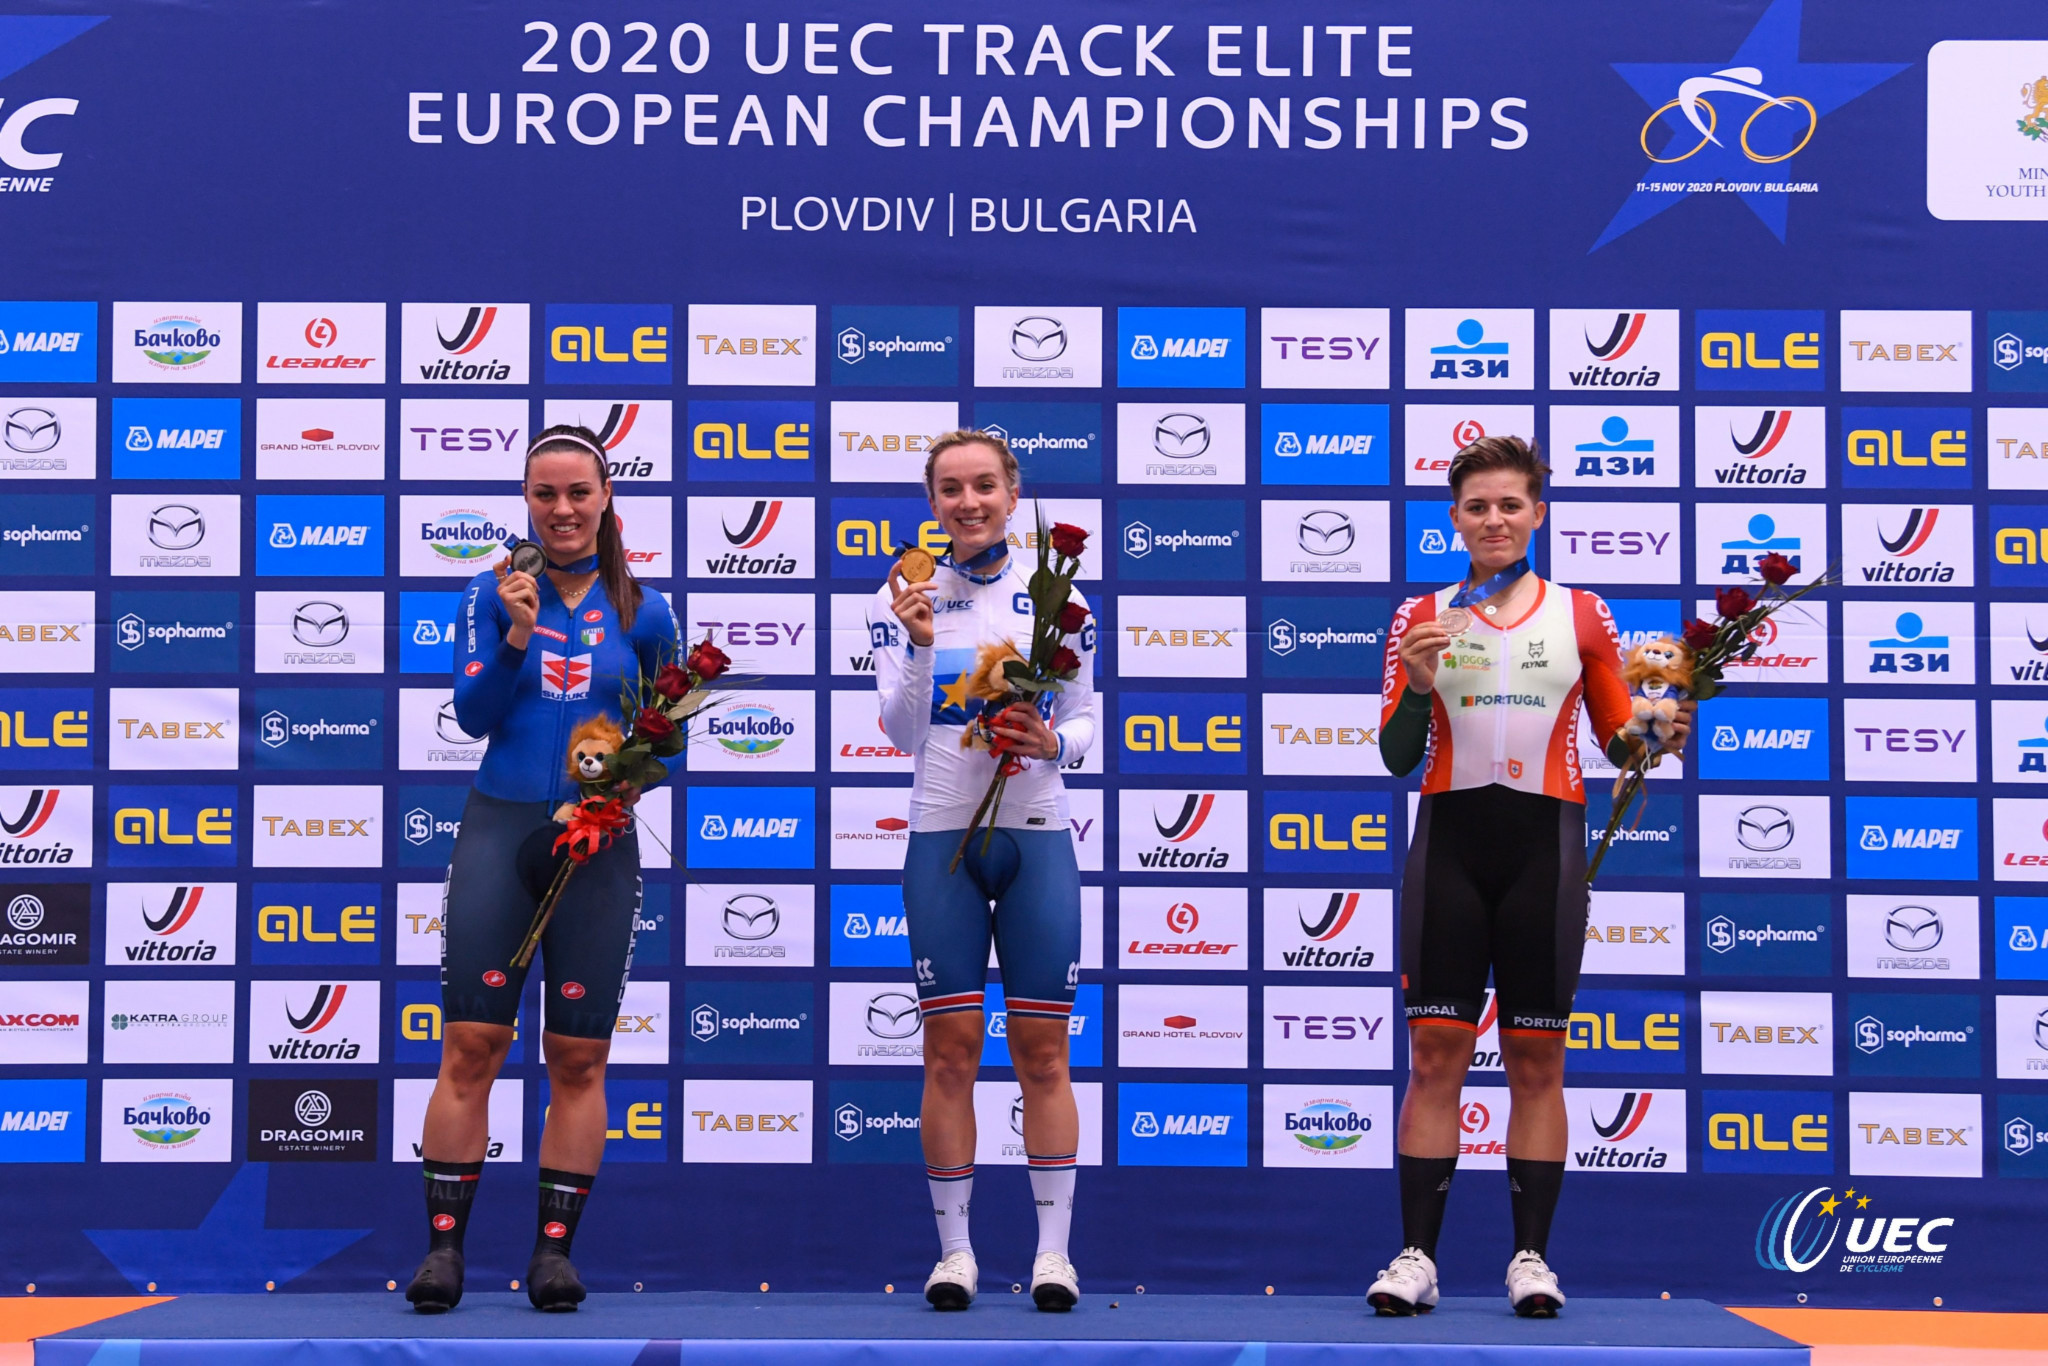 The medallists in the women's elimination race - from left Rachele Barbieri, Elinor Barker and Maria Martins ©UEC